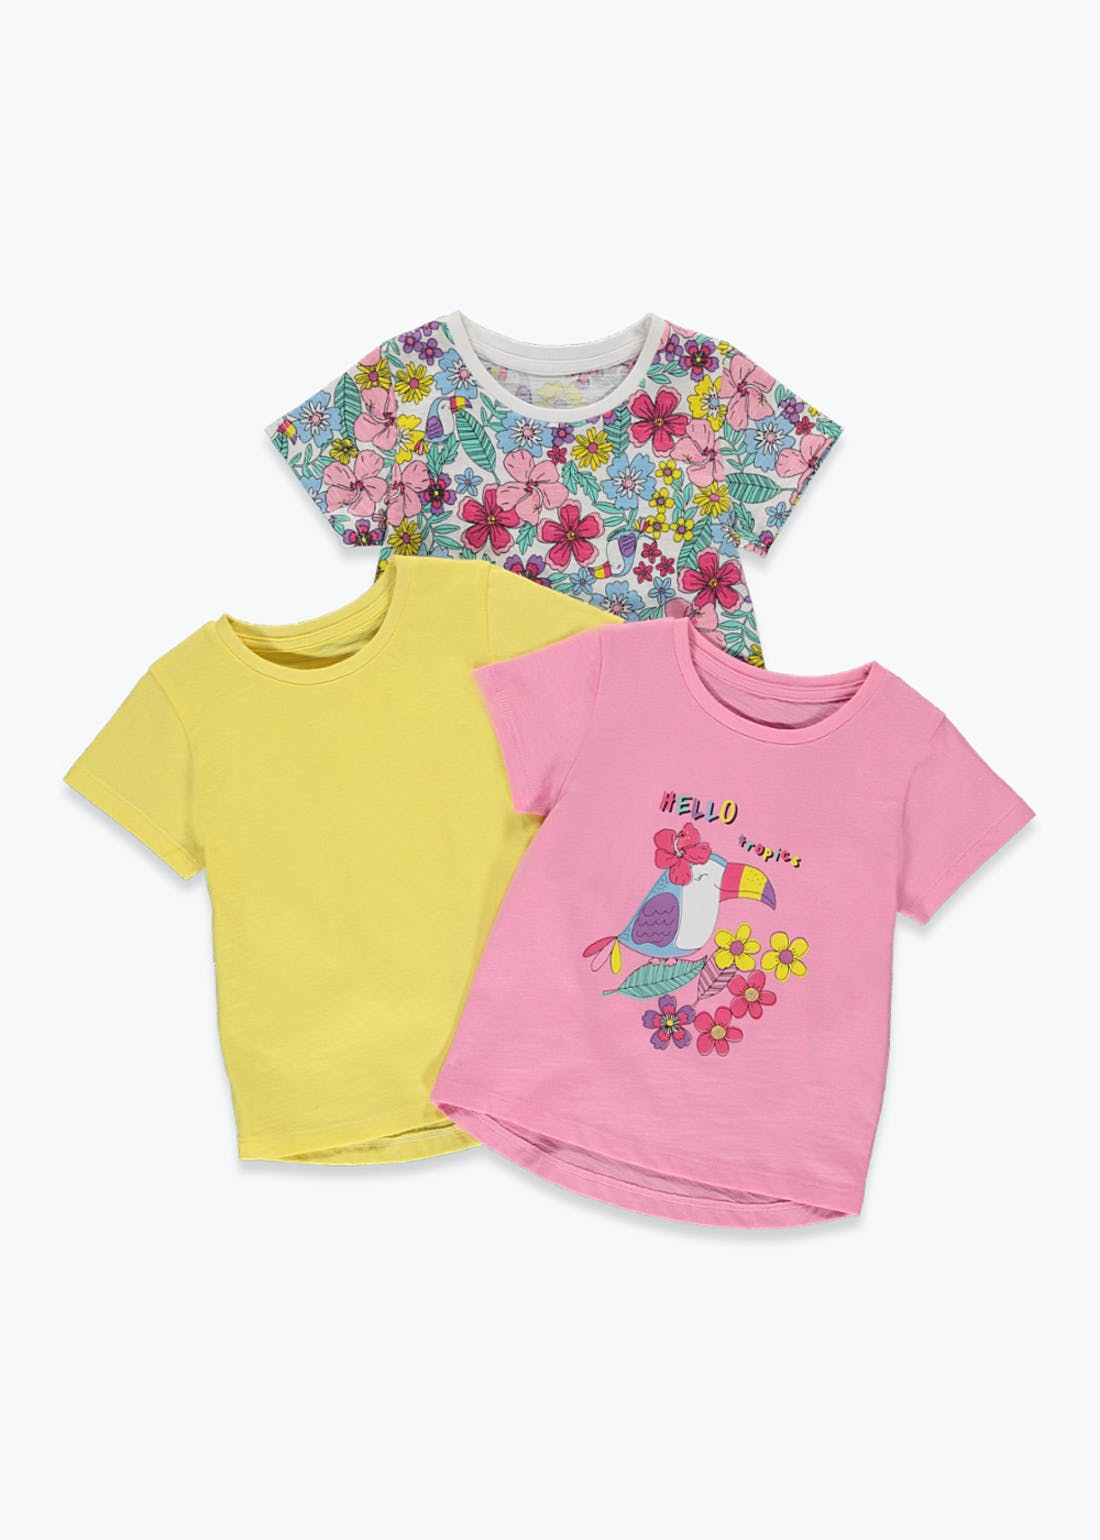 Girls 3 Pack Floral Tops (9mths-6yrs)